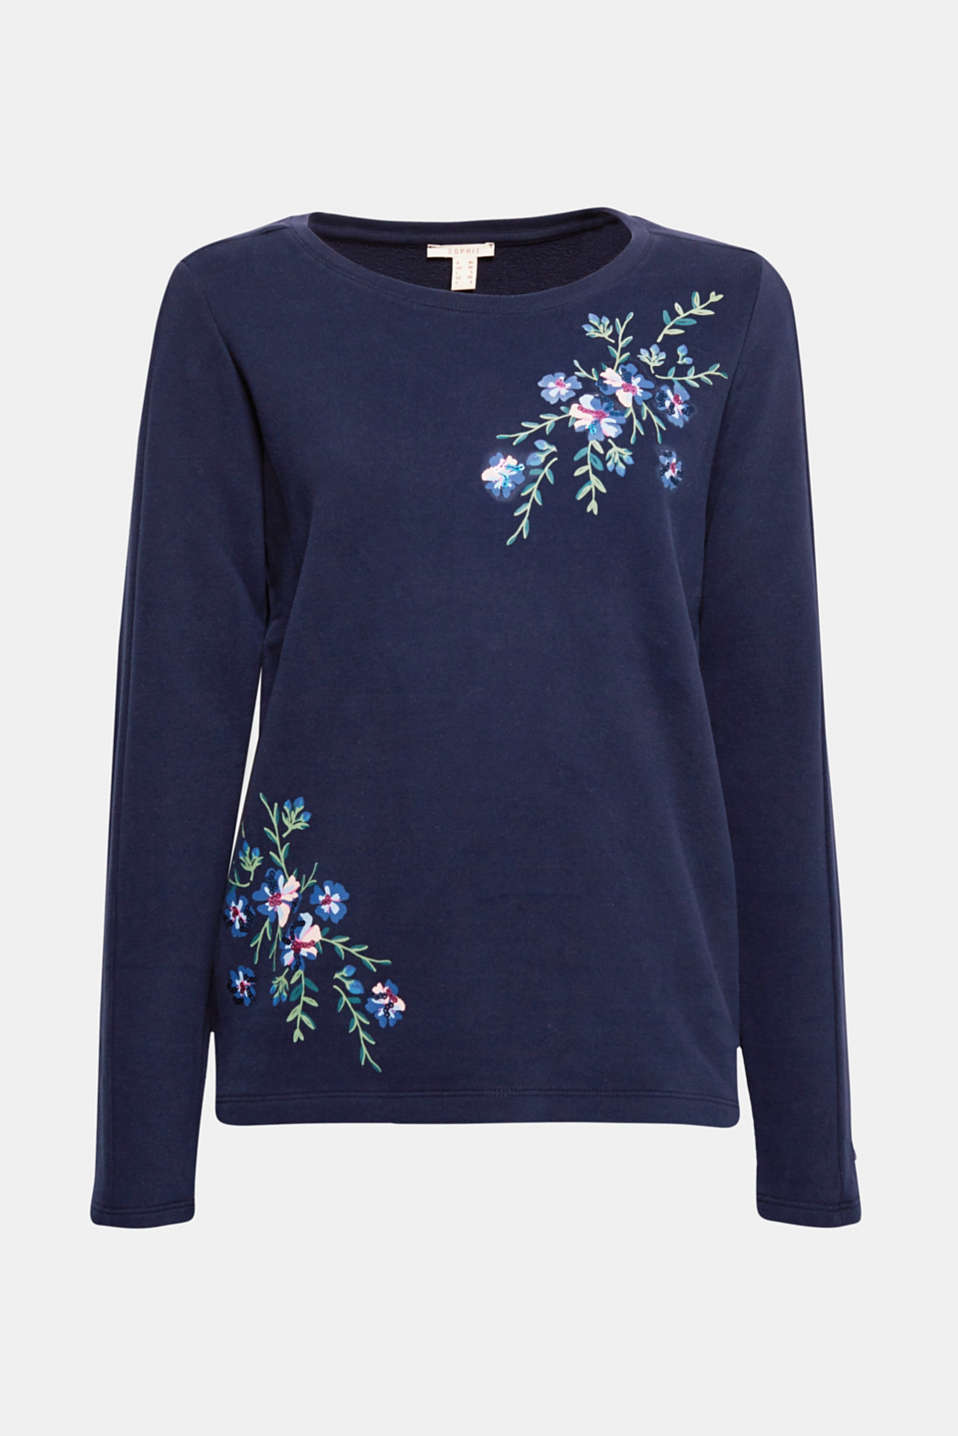 Sporty sweatshirt meets floral print and shimmering sequin embroidery – making it your new favourite piece guaranteed! Voilà!